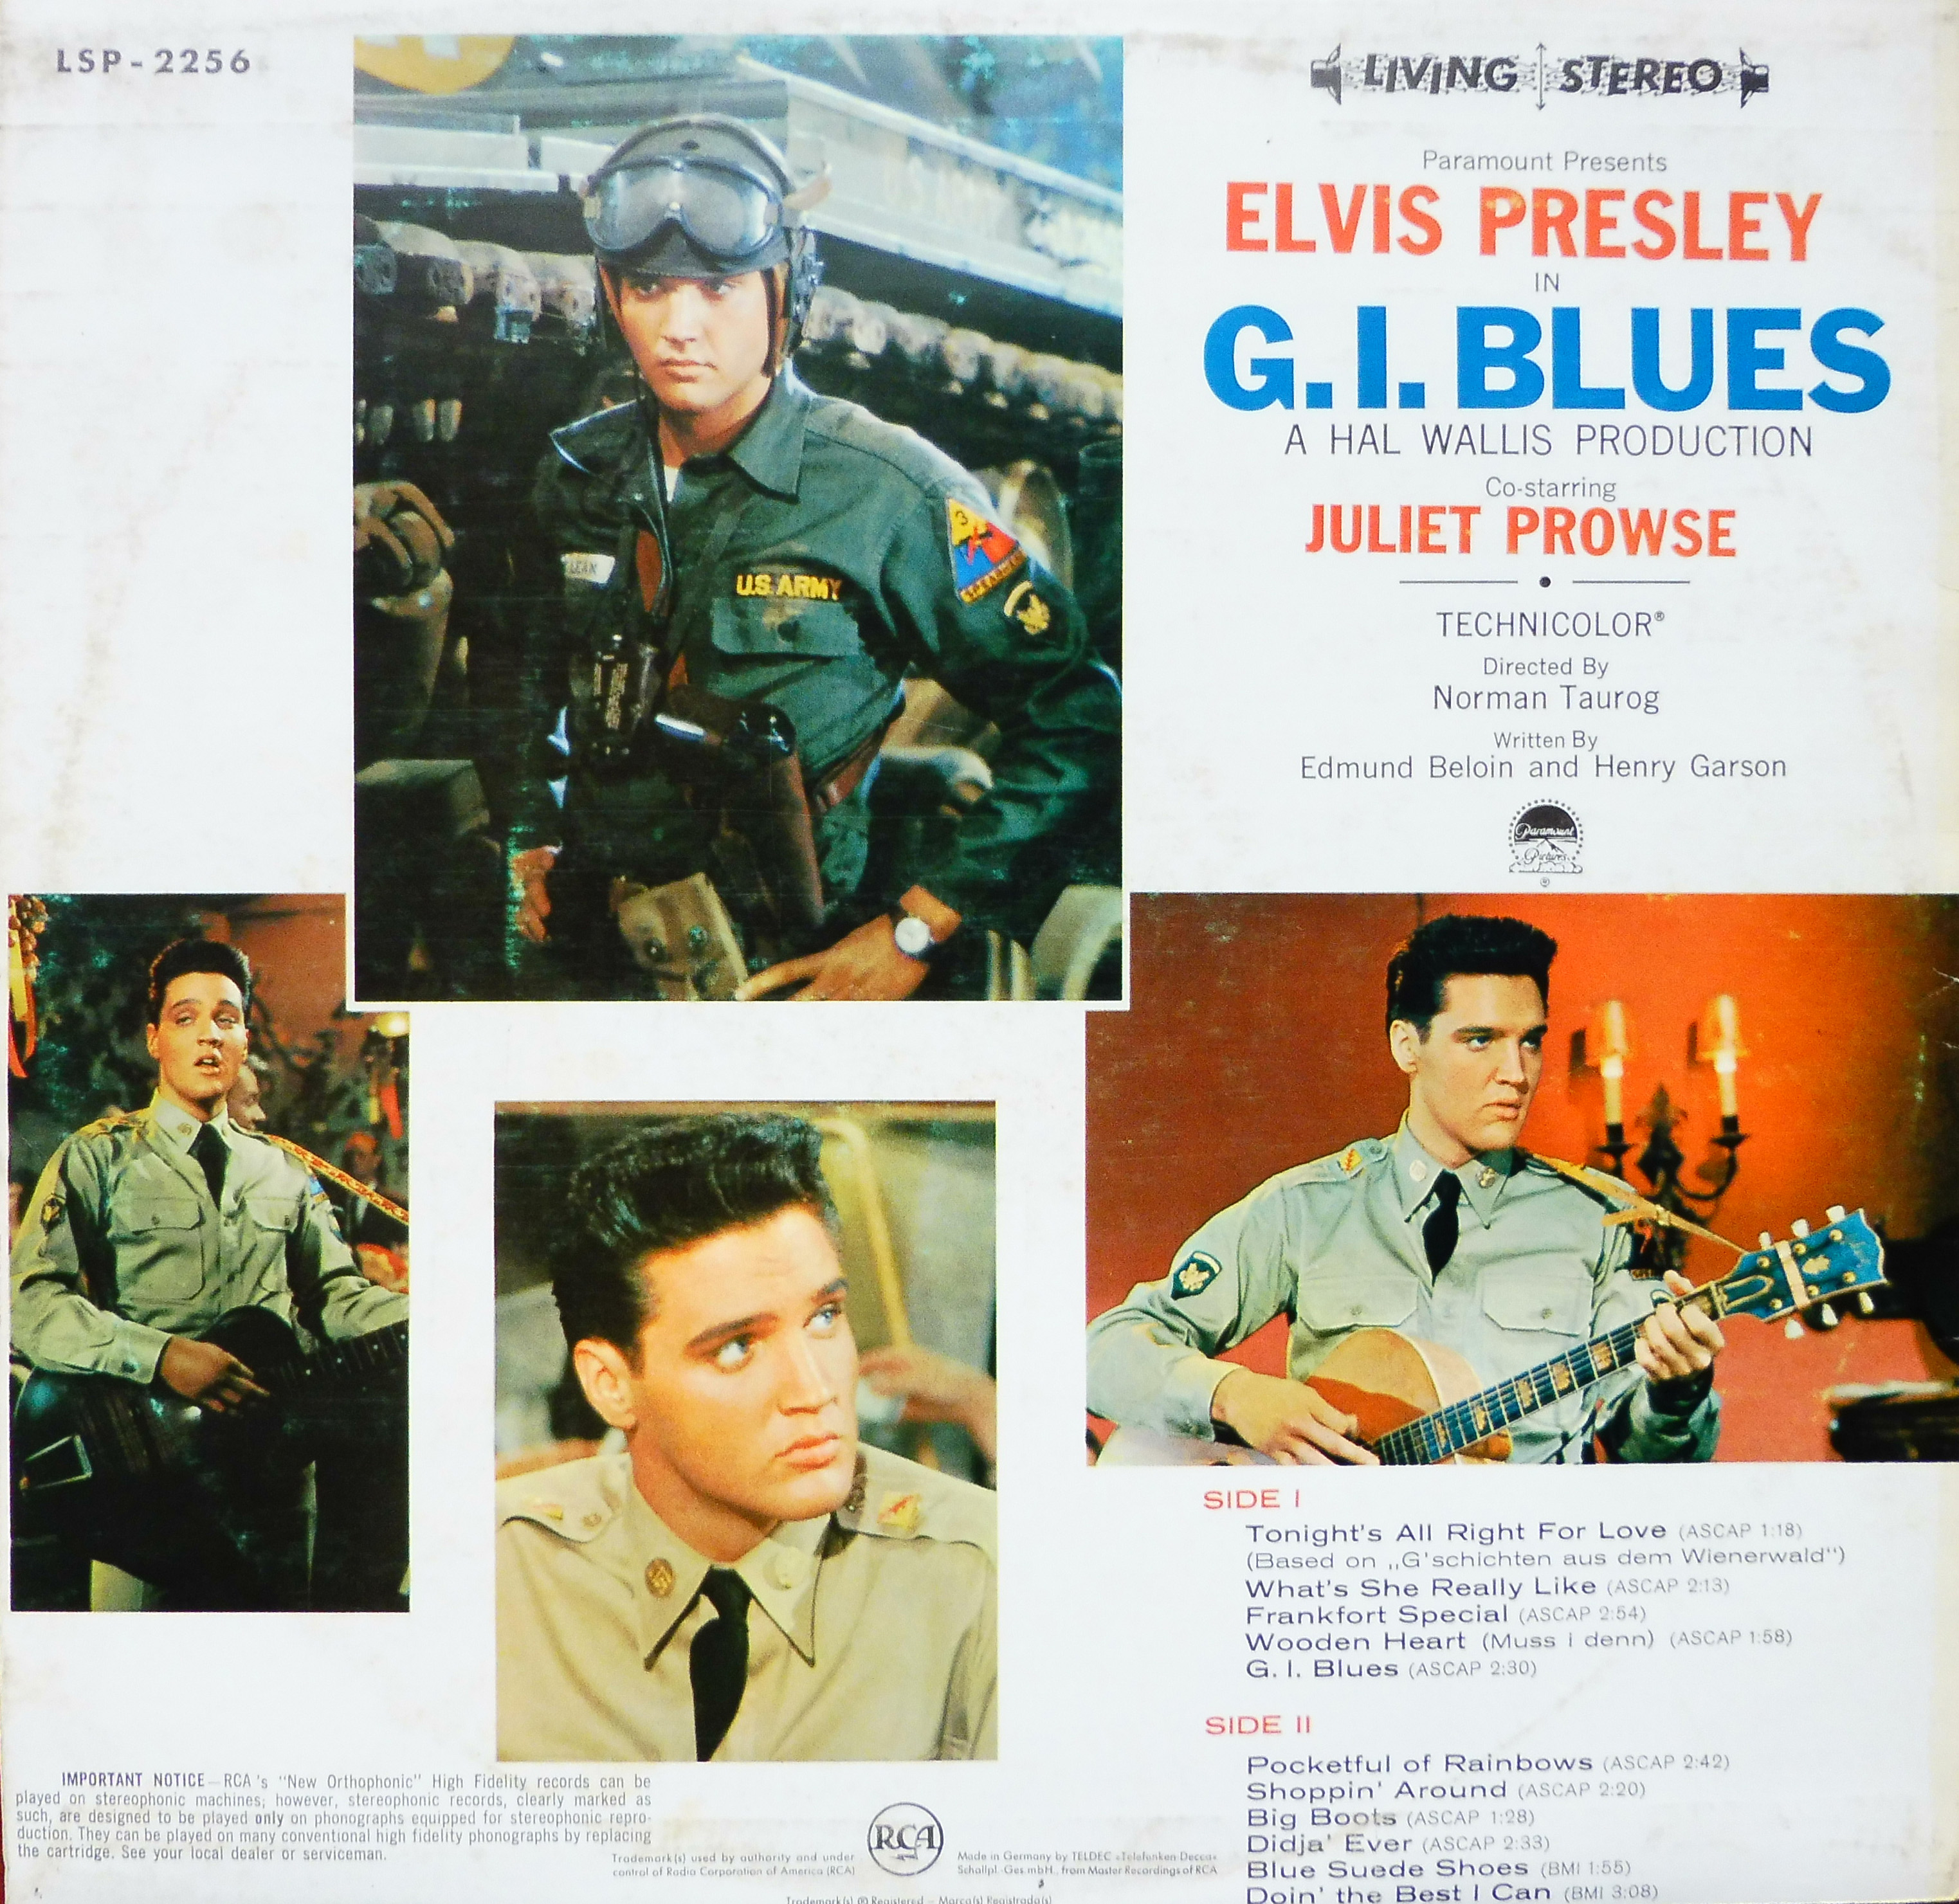 G.I. BLUES Gi60livingstereorckseo7kr5